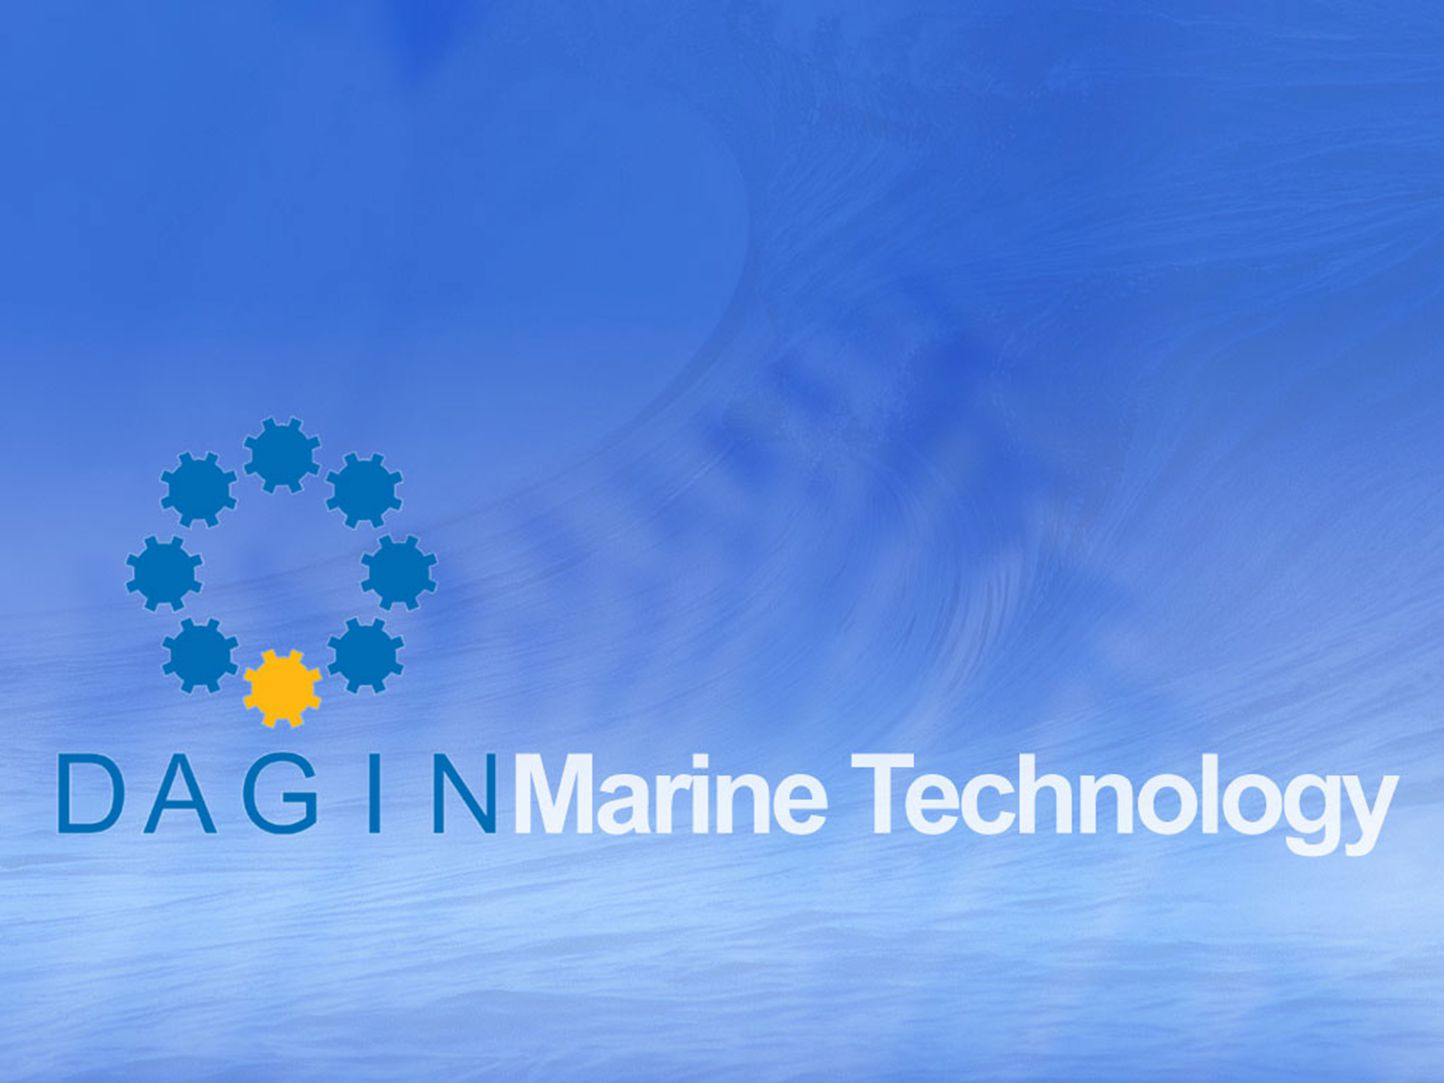 DAGIN Marine Technology Group of 5 Dutch companies, very experienced in the shipbuilding industry.